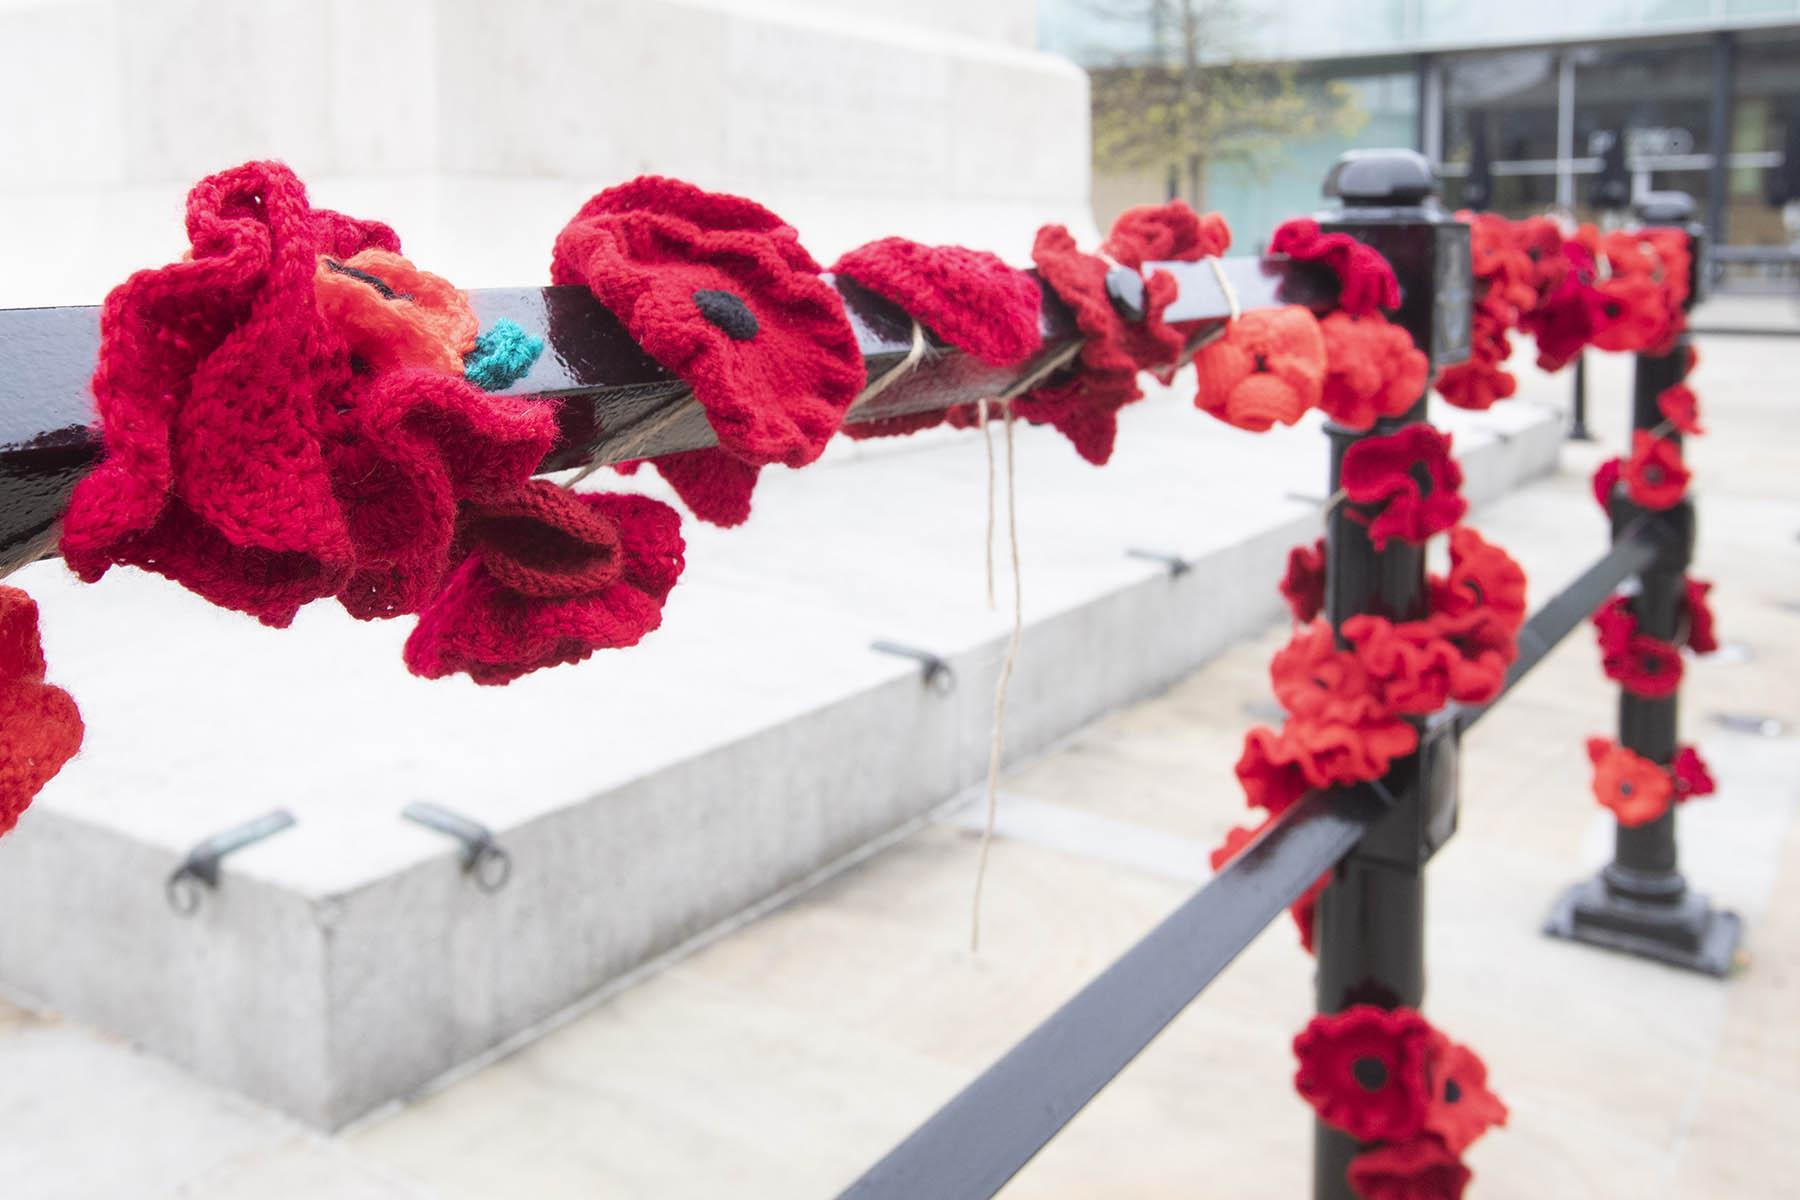 Last year's poppy display at Old Eldon Square.